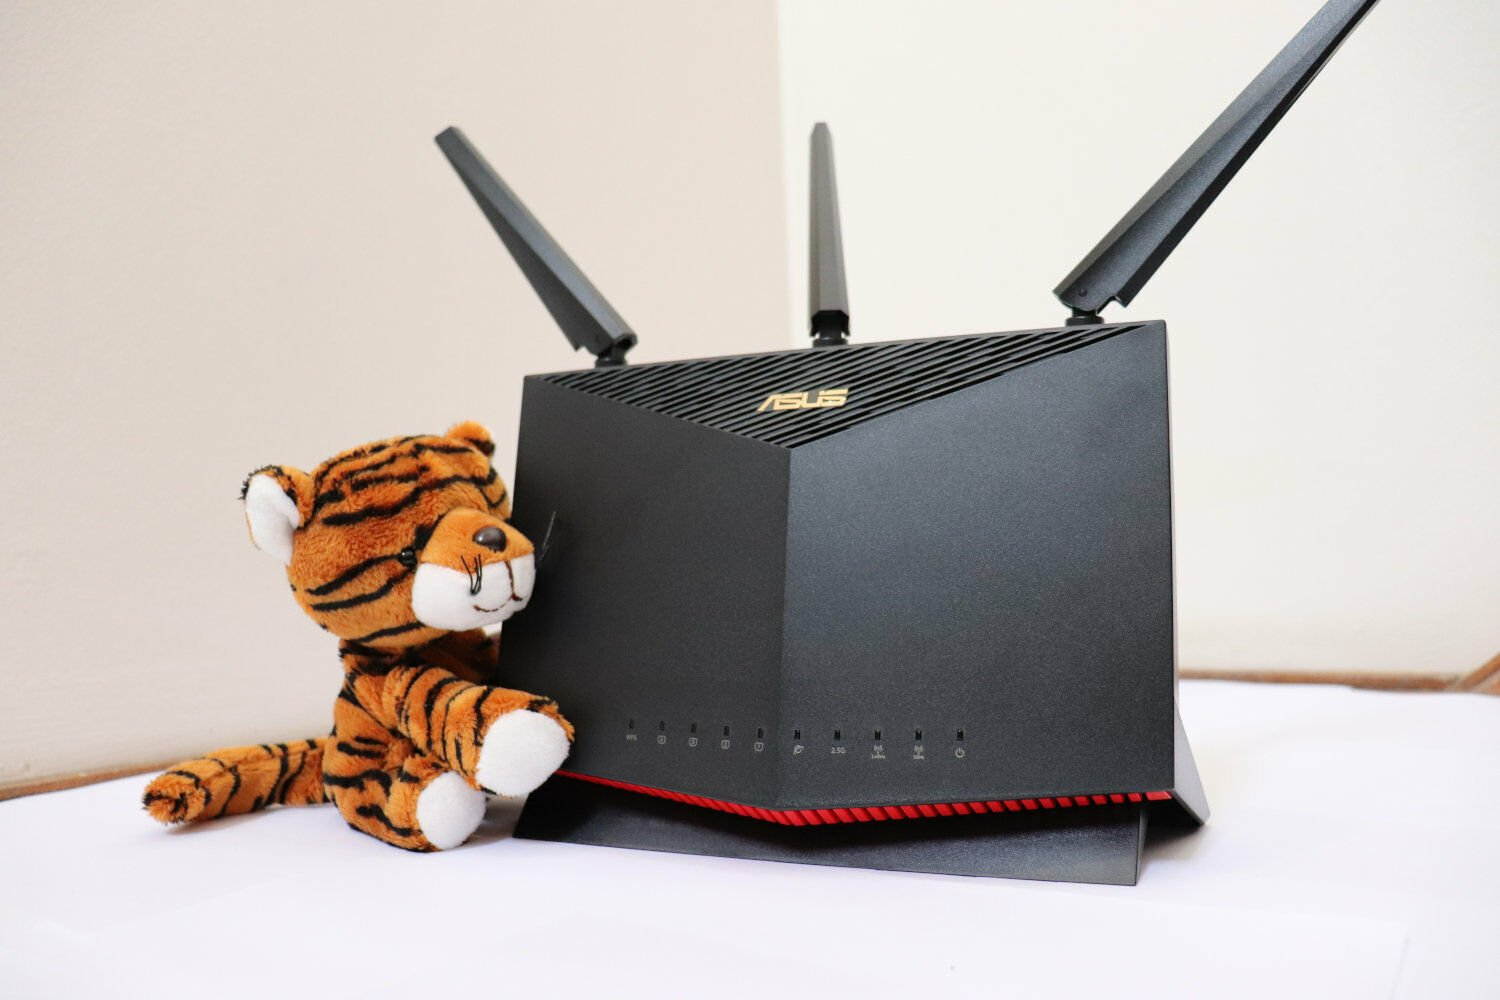 ASUS RT-AX86U - Best Gaming Router Review